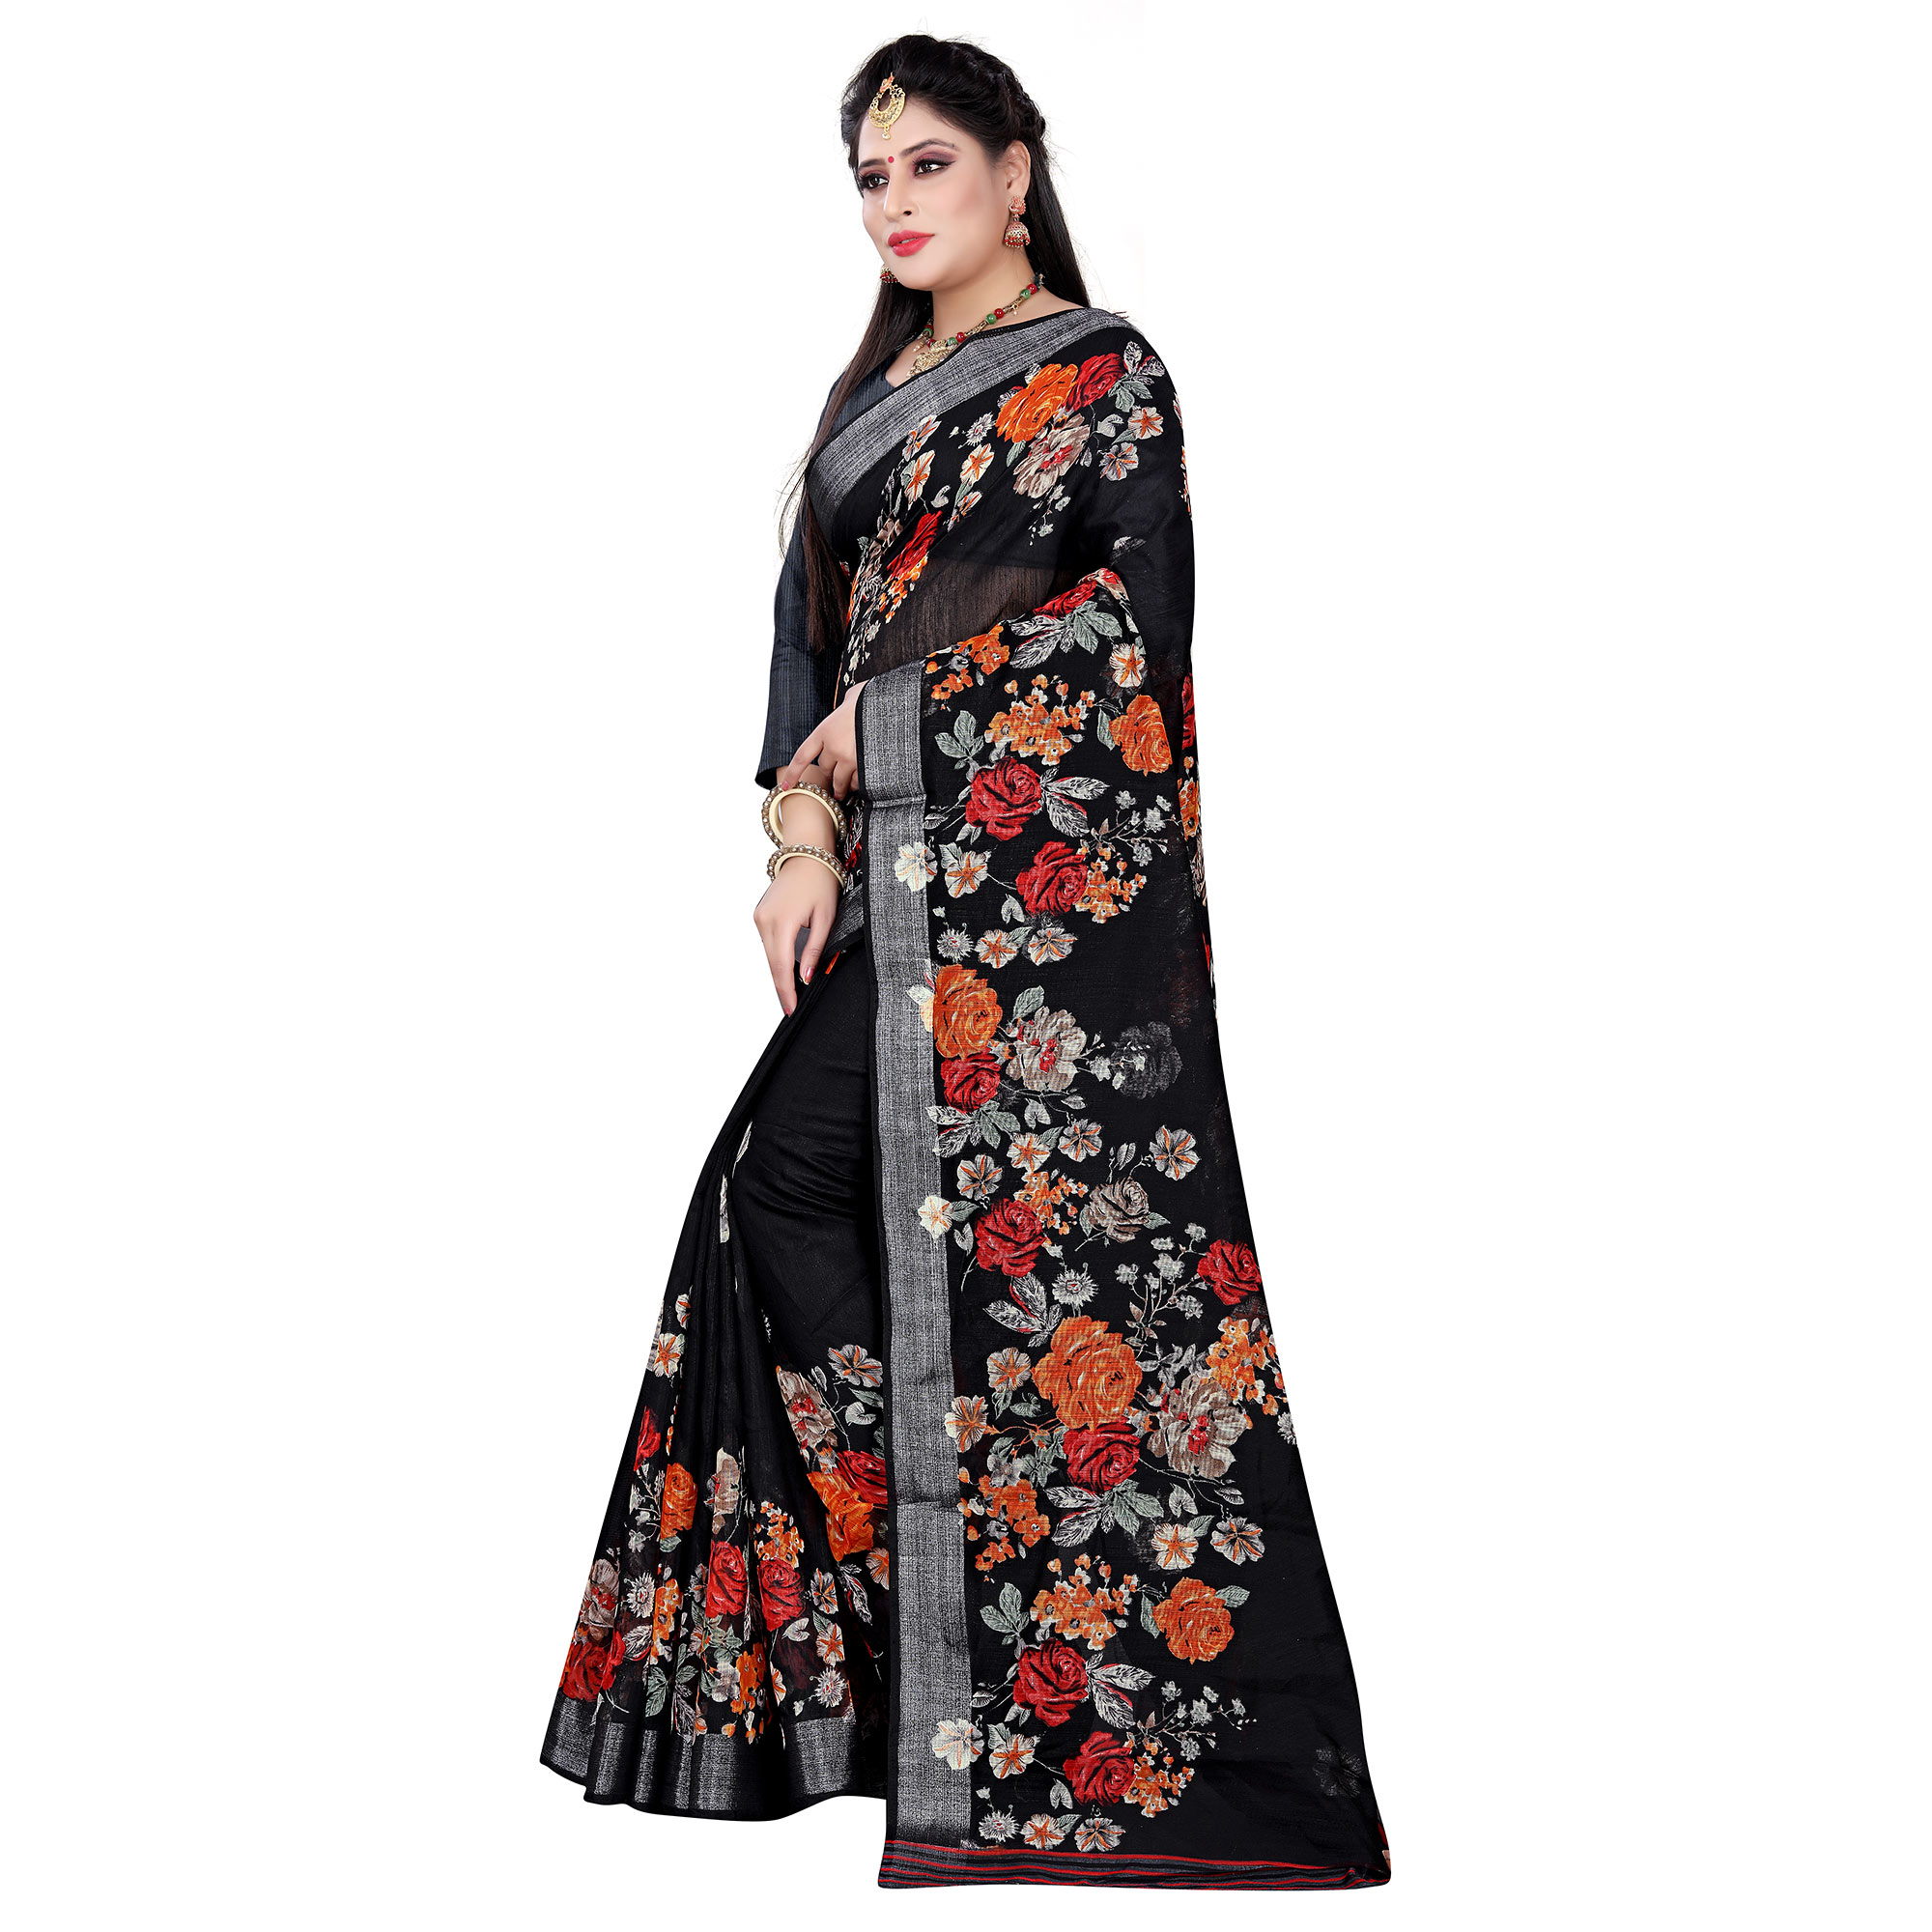 Beautiful Black Colored Casual Floral Printed Linen Saree